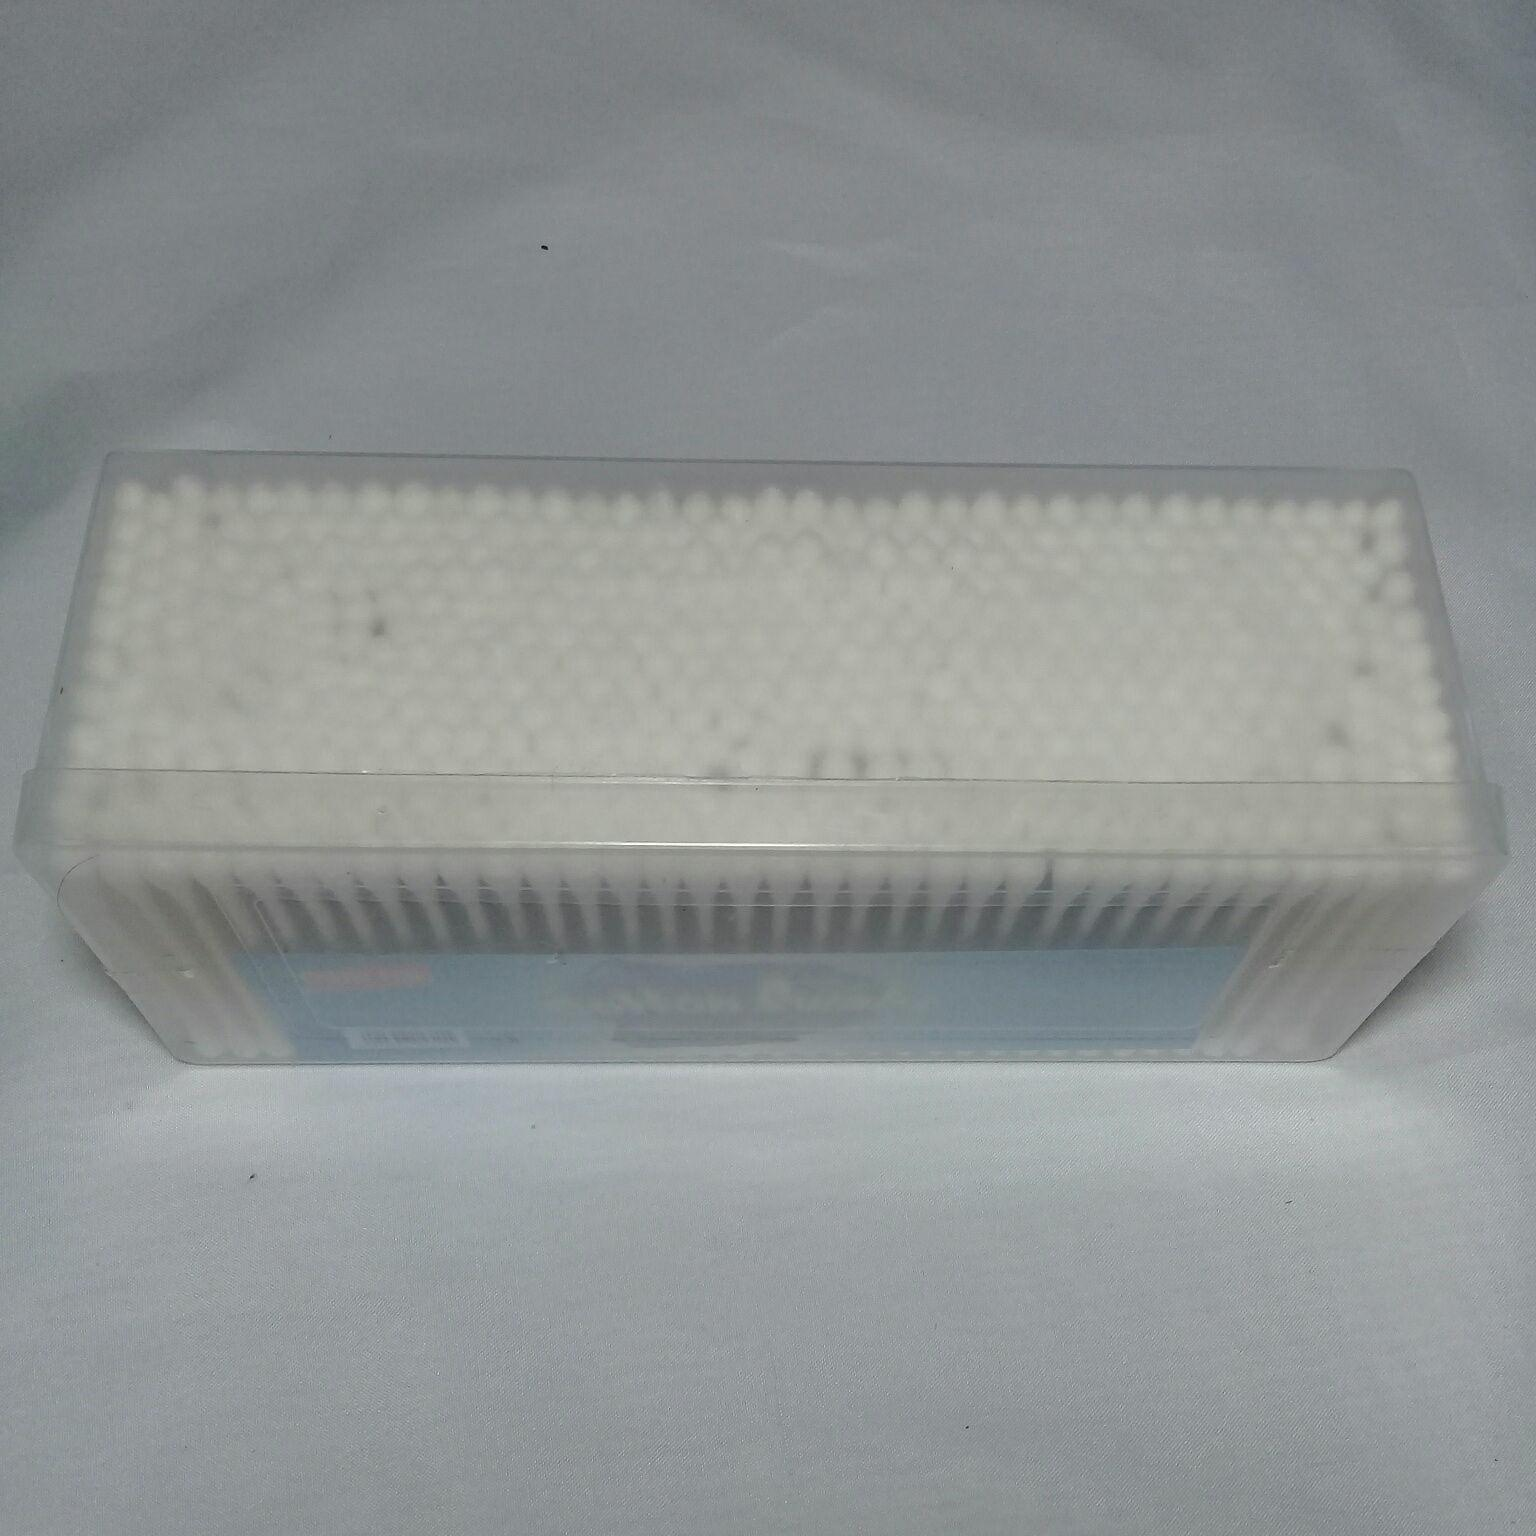 0102 Cotton buds square box 500pcs Philippines